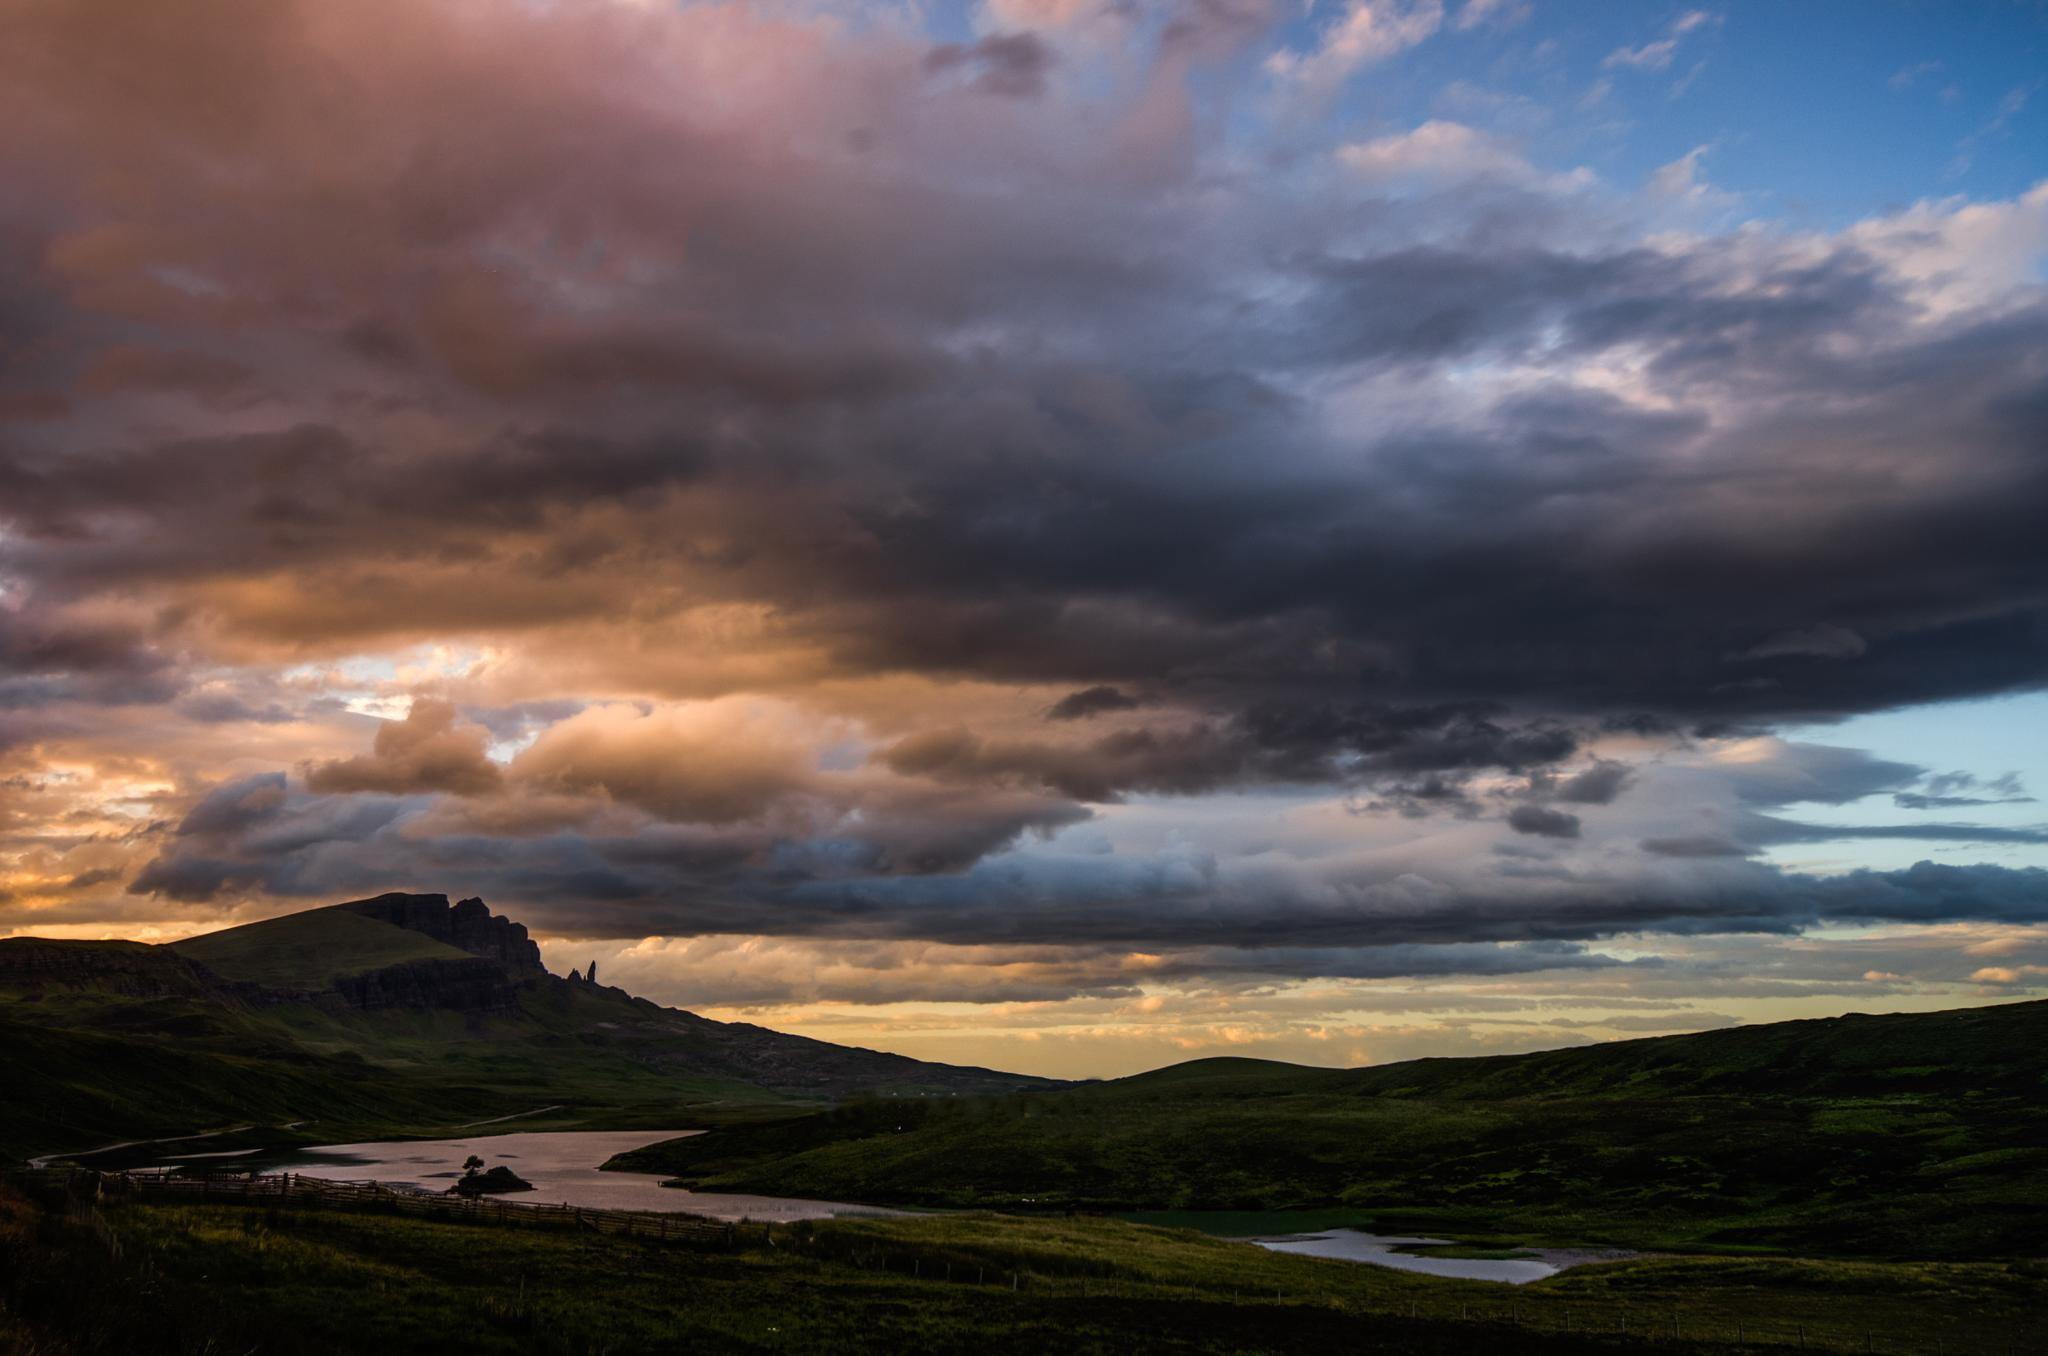 Trotternish Ridge by Liesl van Niekerk